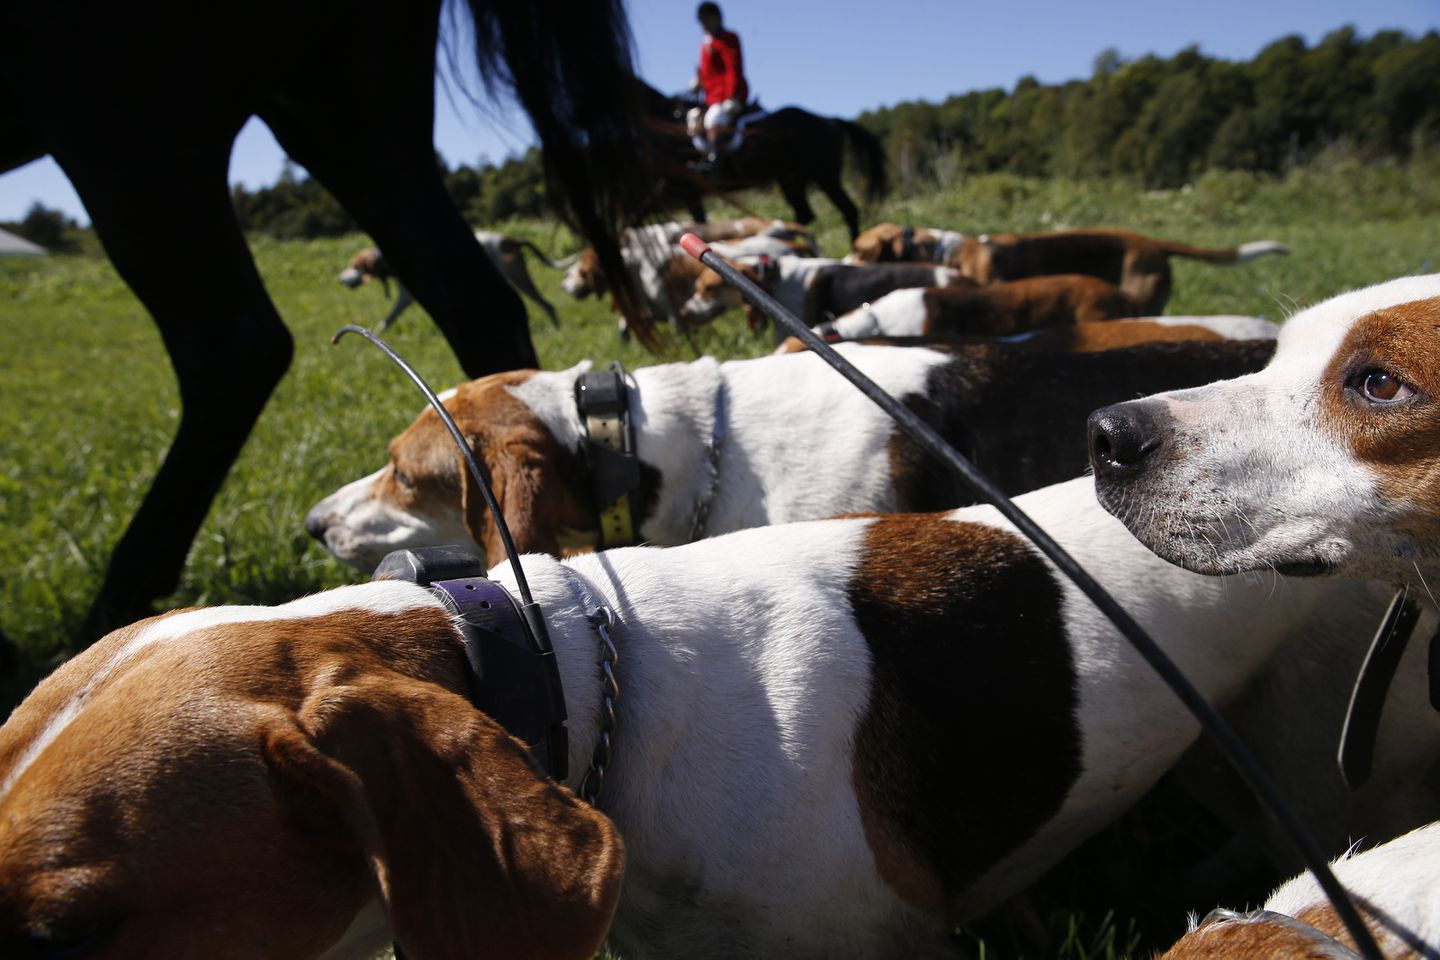 The hounds follow closely behind their Huntsman and Kennelman, Kate Selby. The dogs wear GPS collars so that Selby will be able to find them if they go astray.